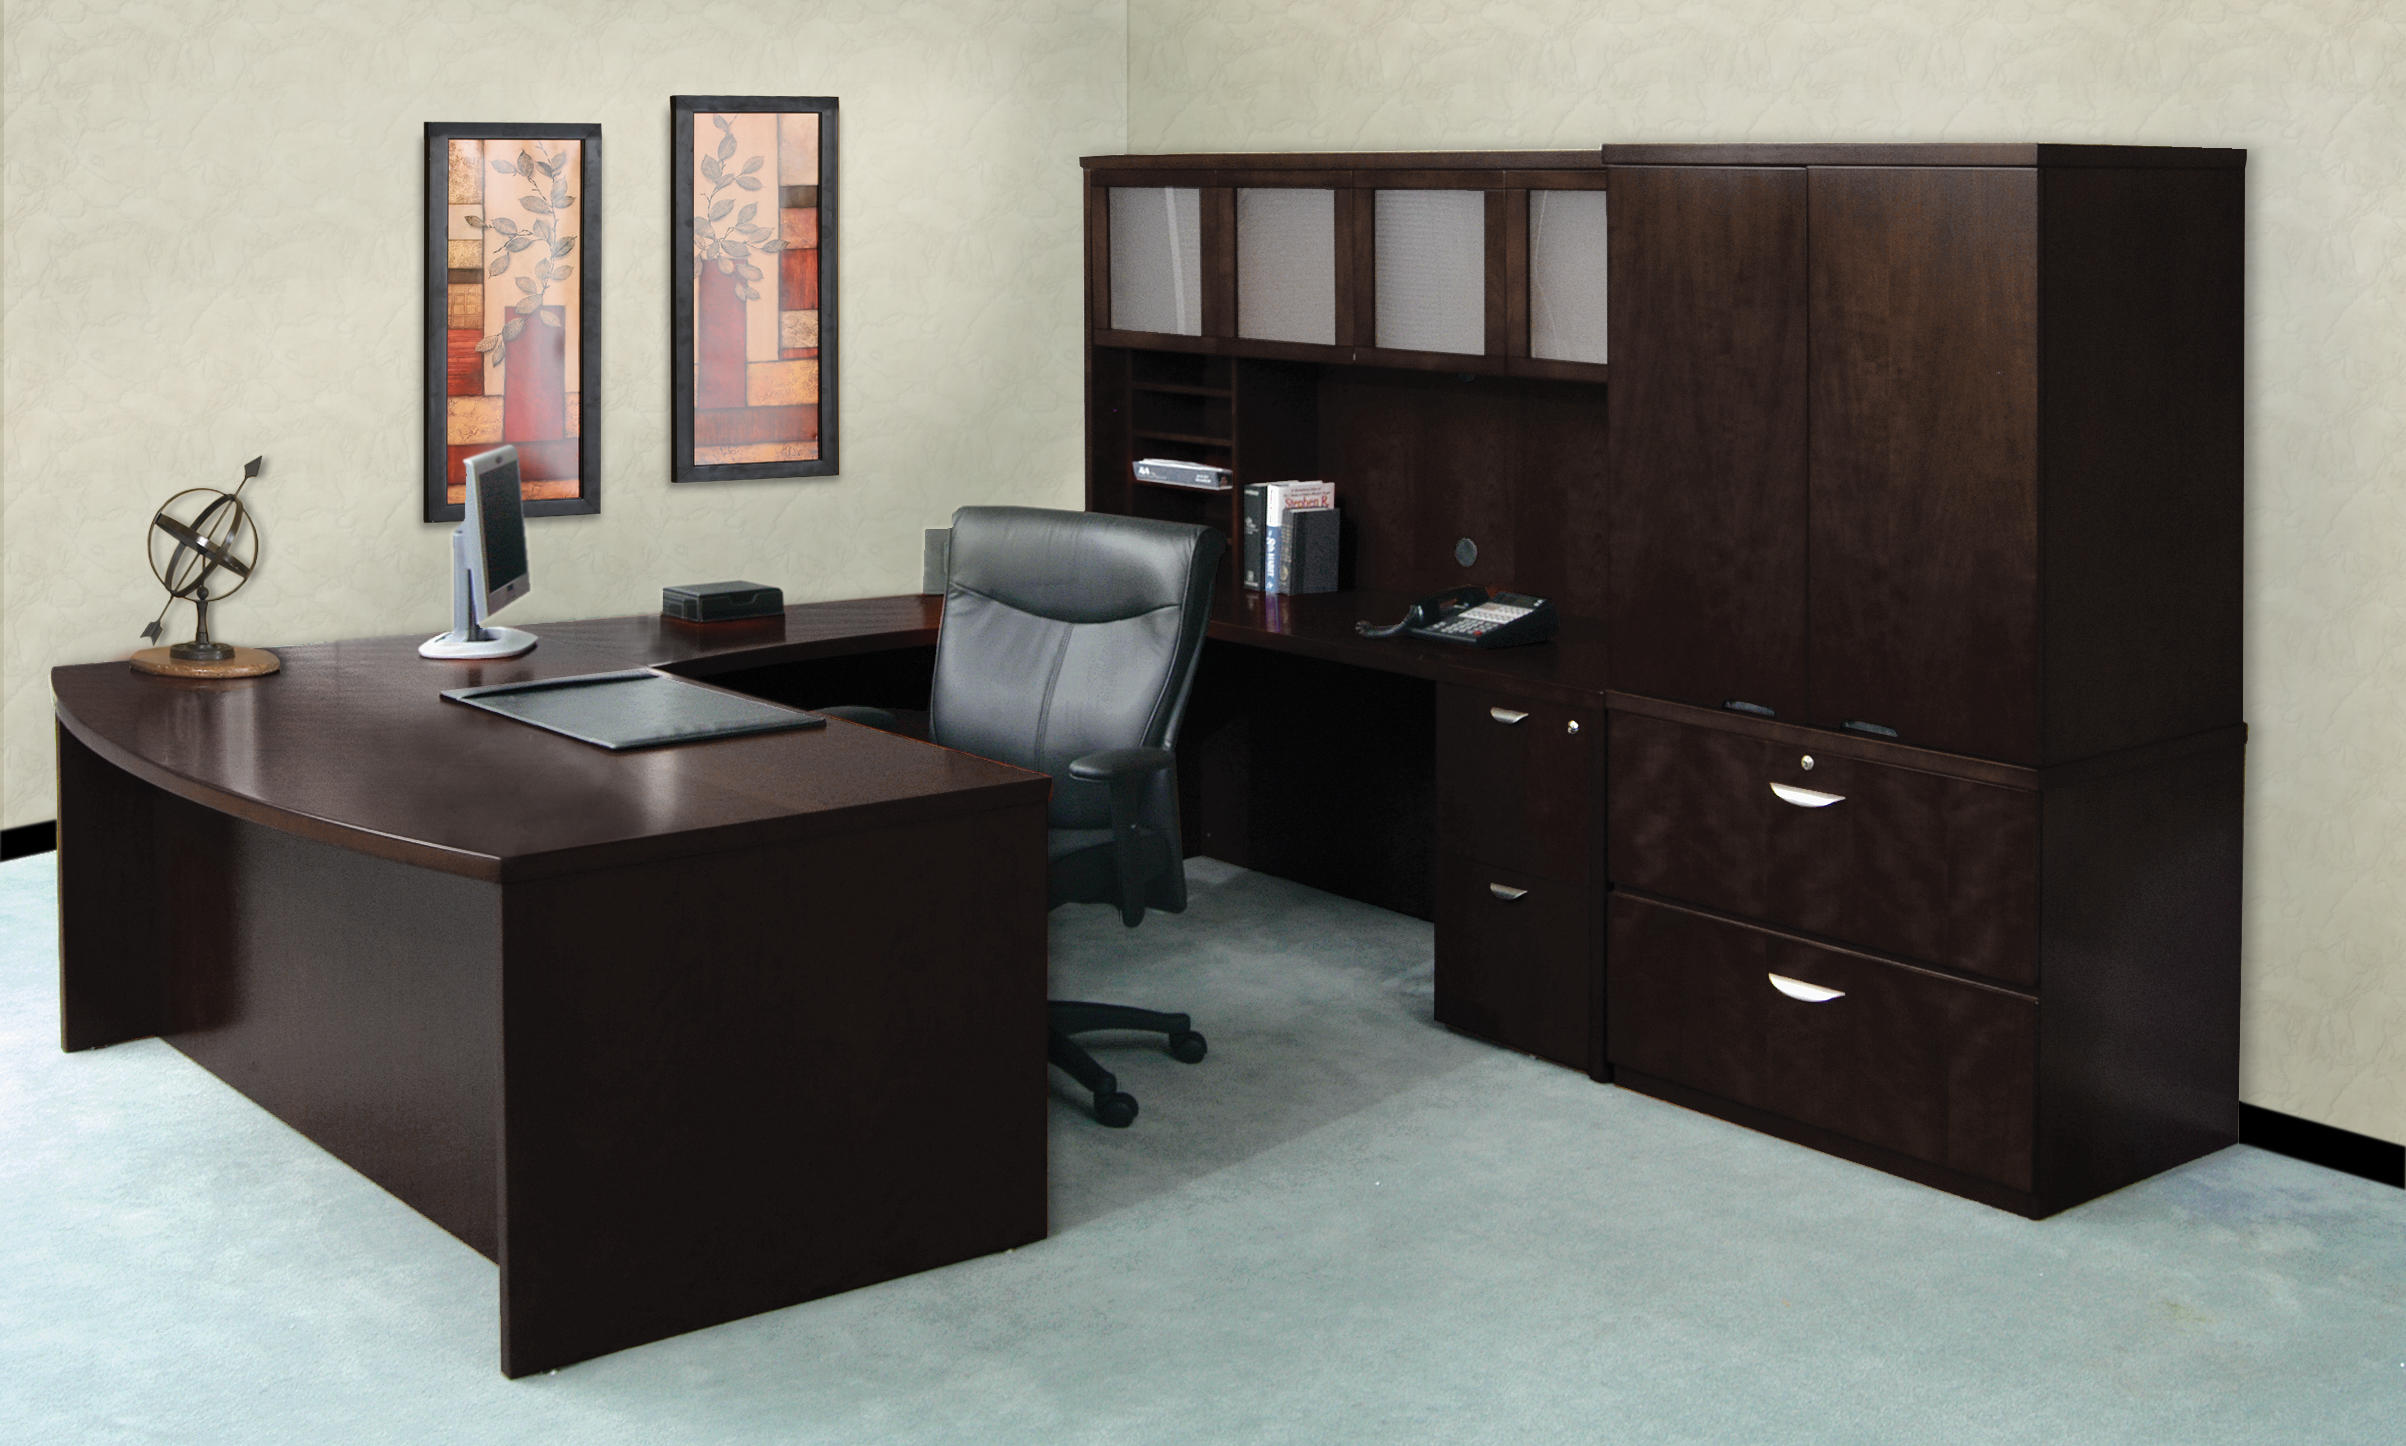 Office Chairs Unlimited image 3